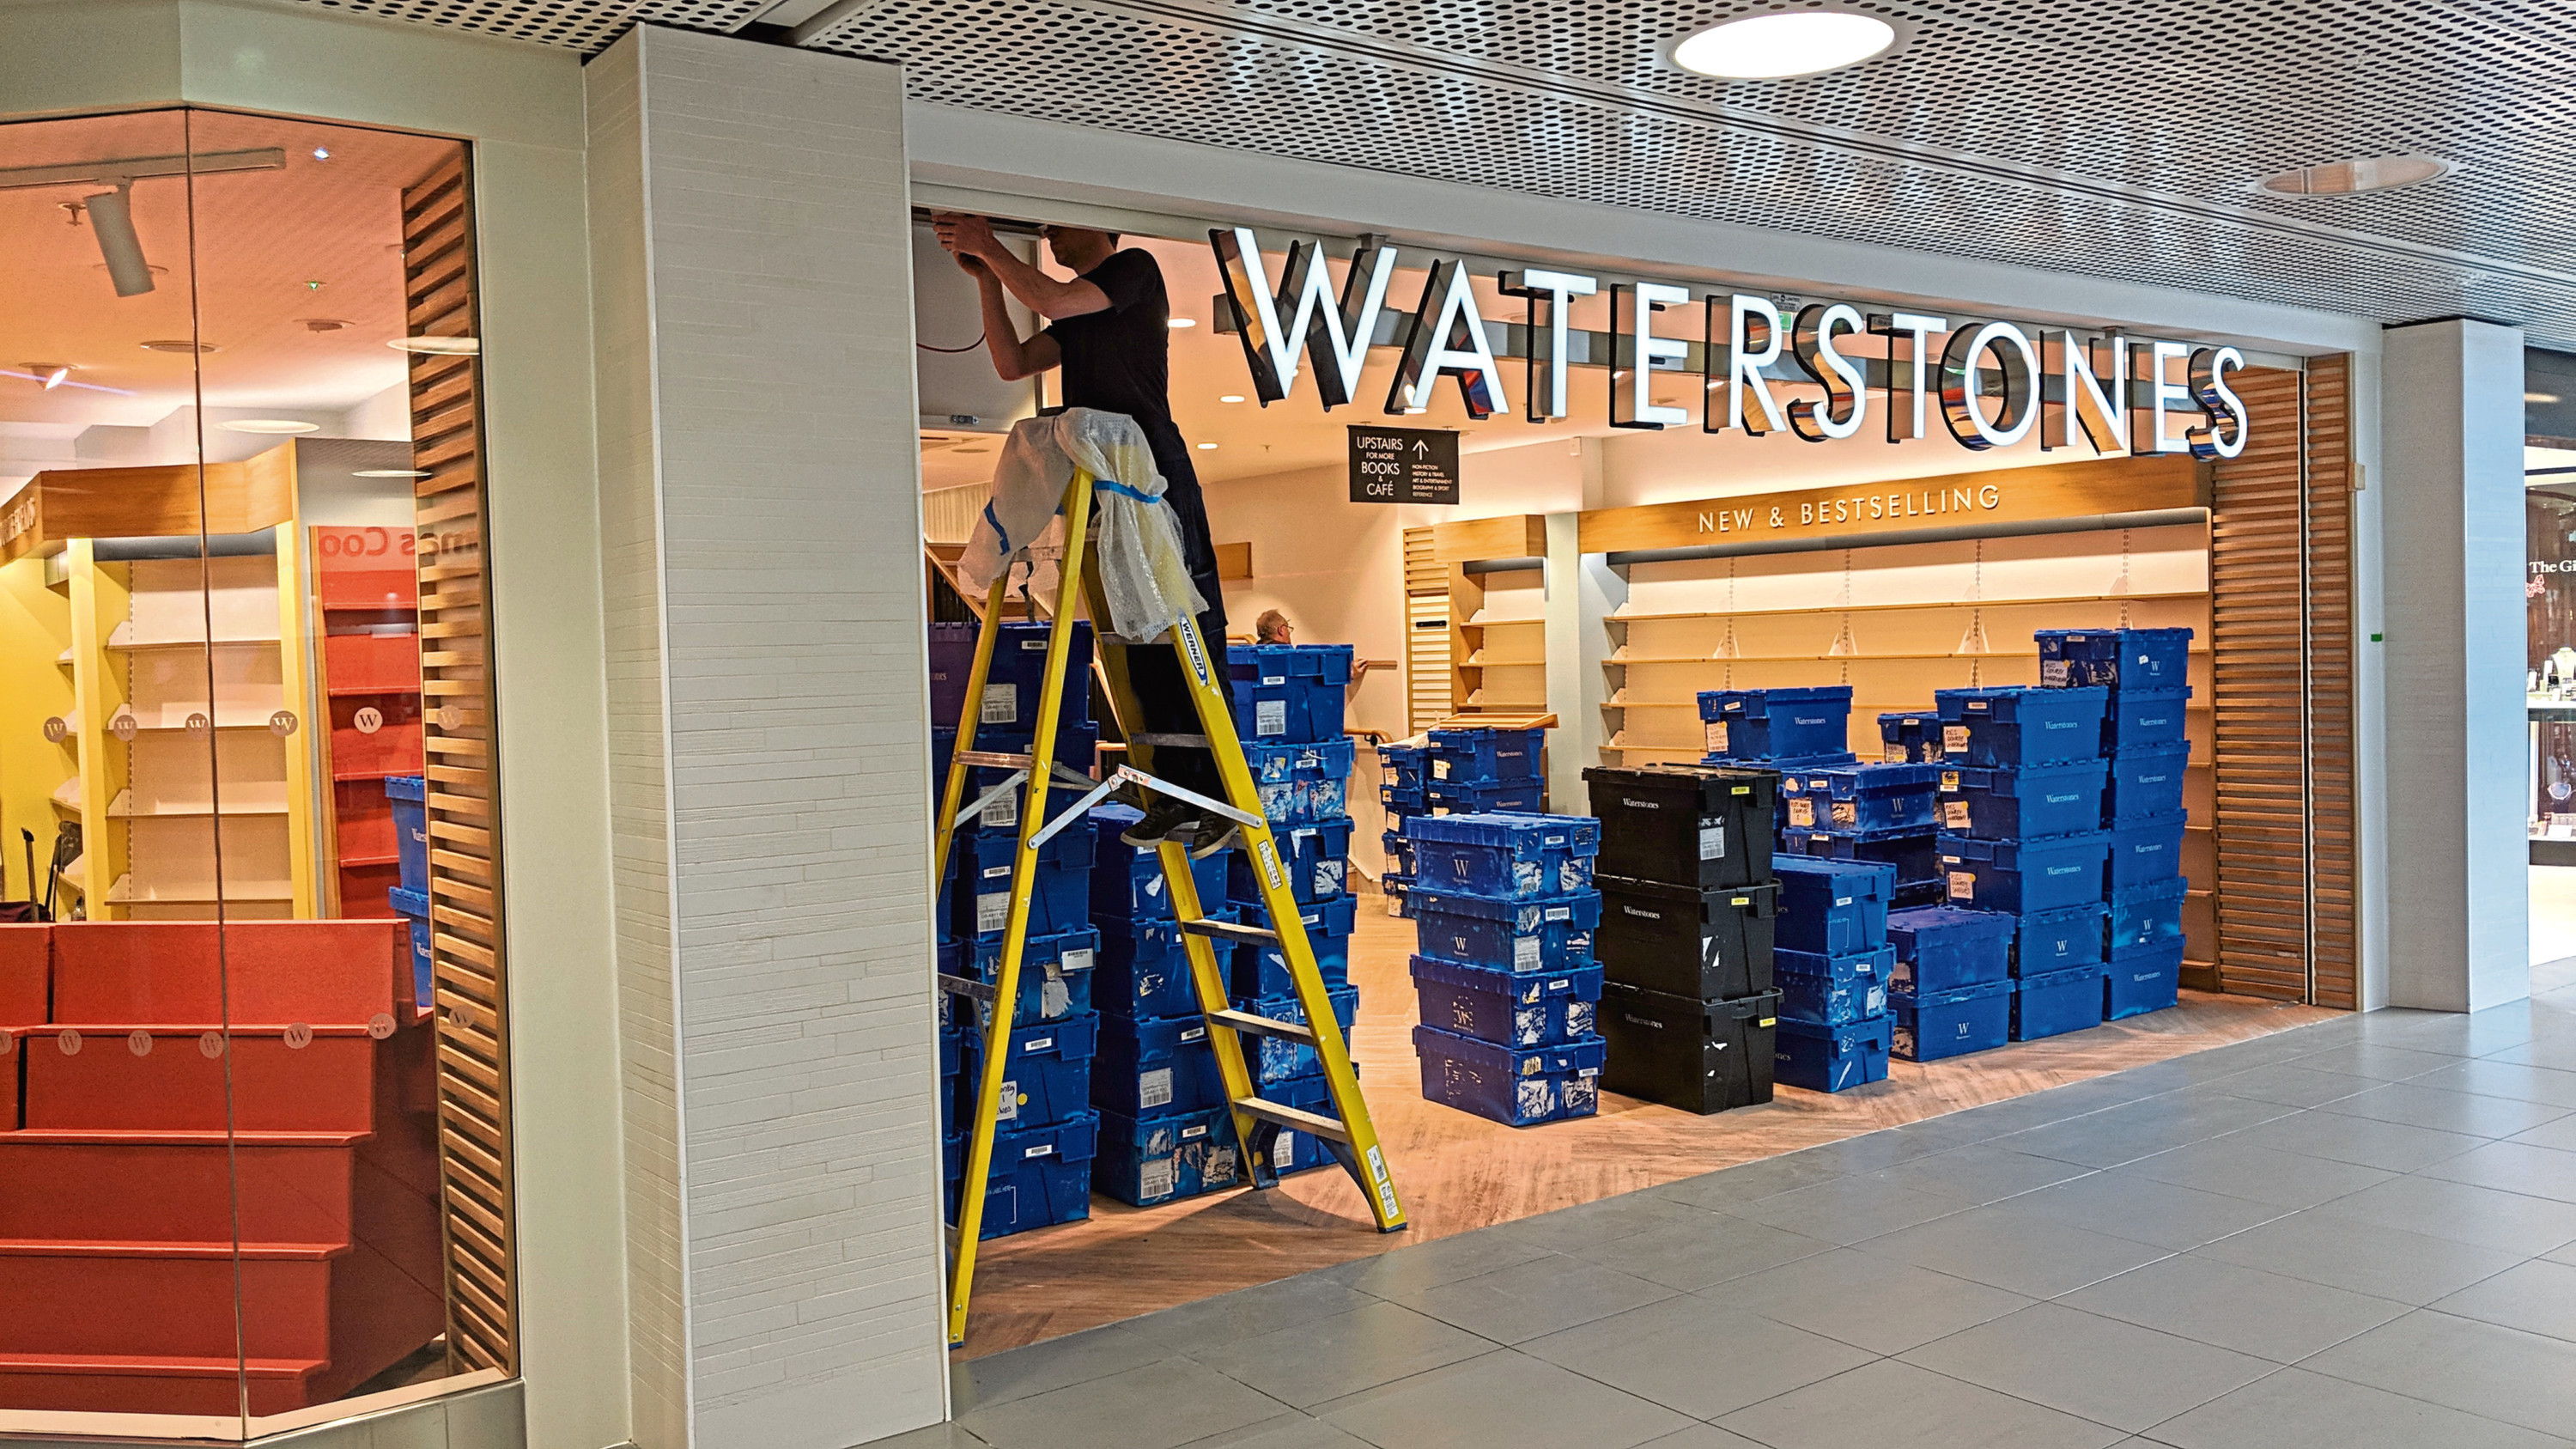 The Waterstones store in the Bon Accord Centre